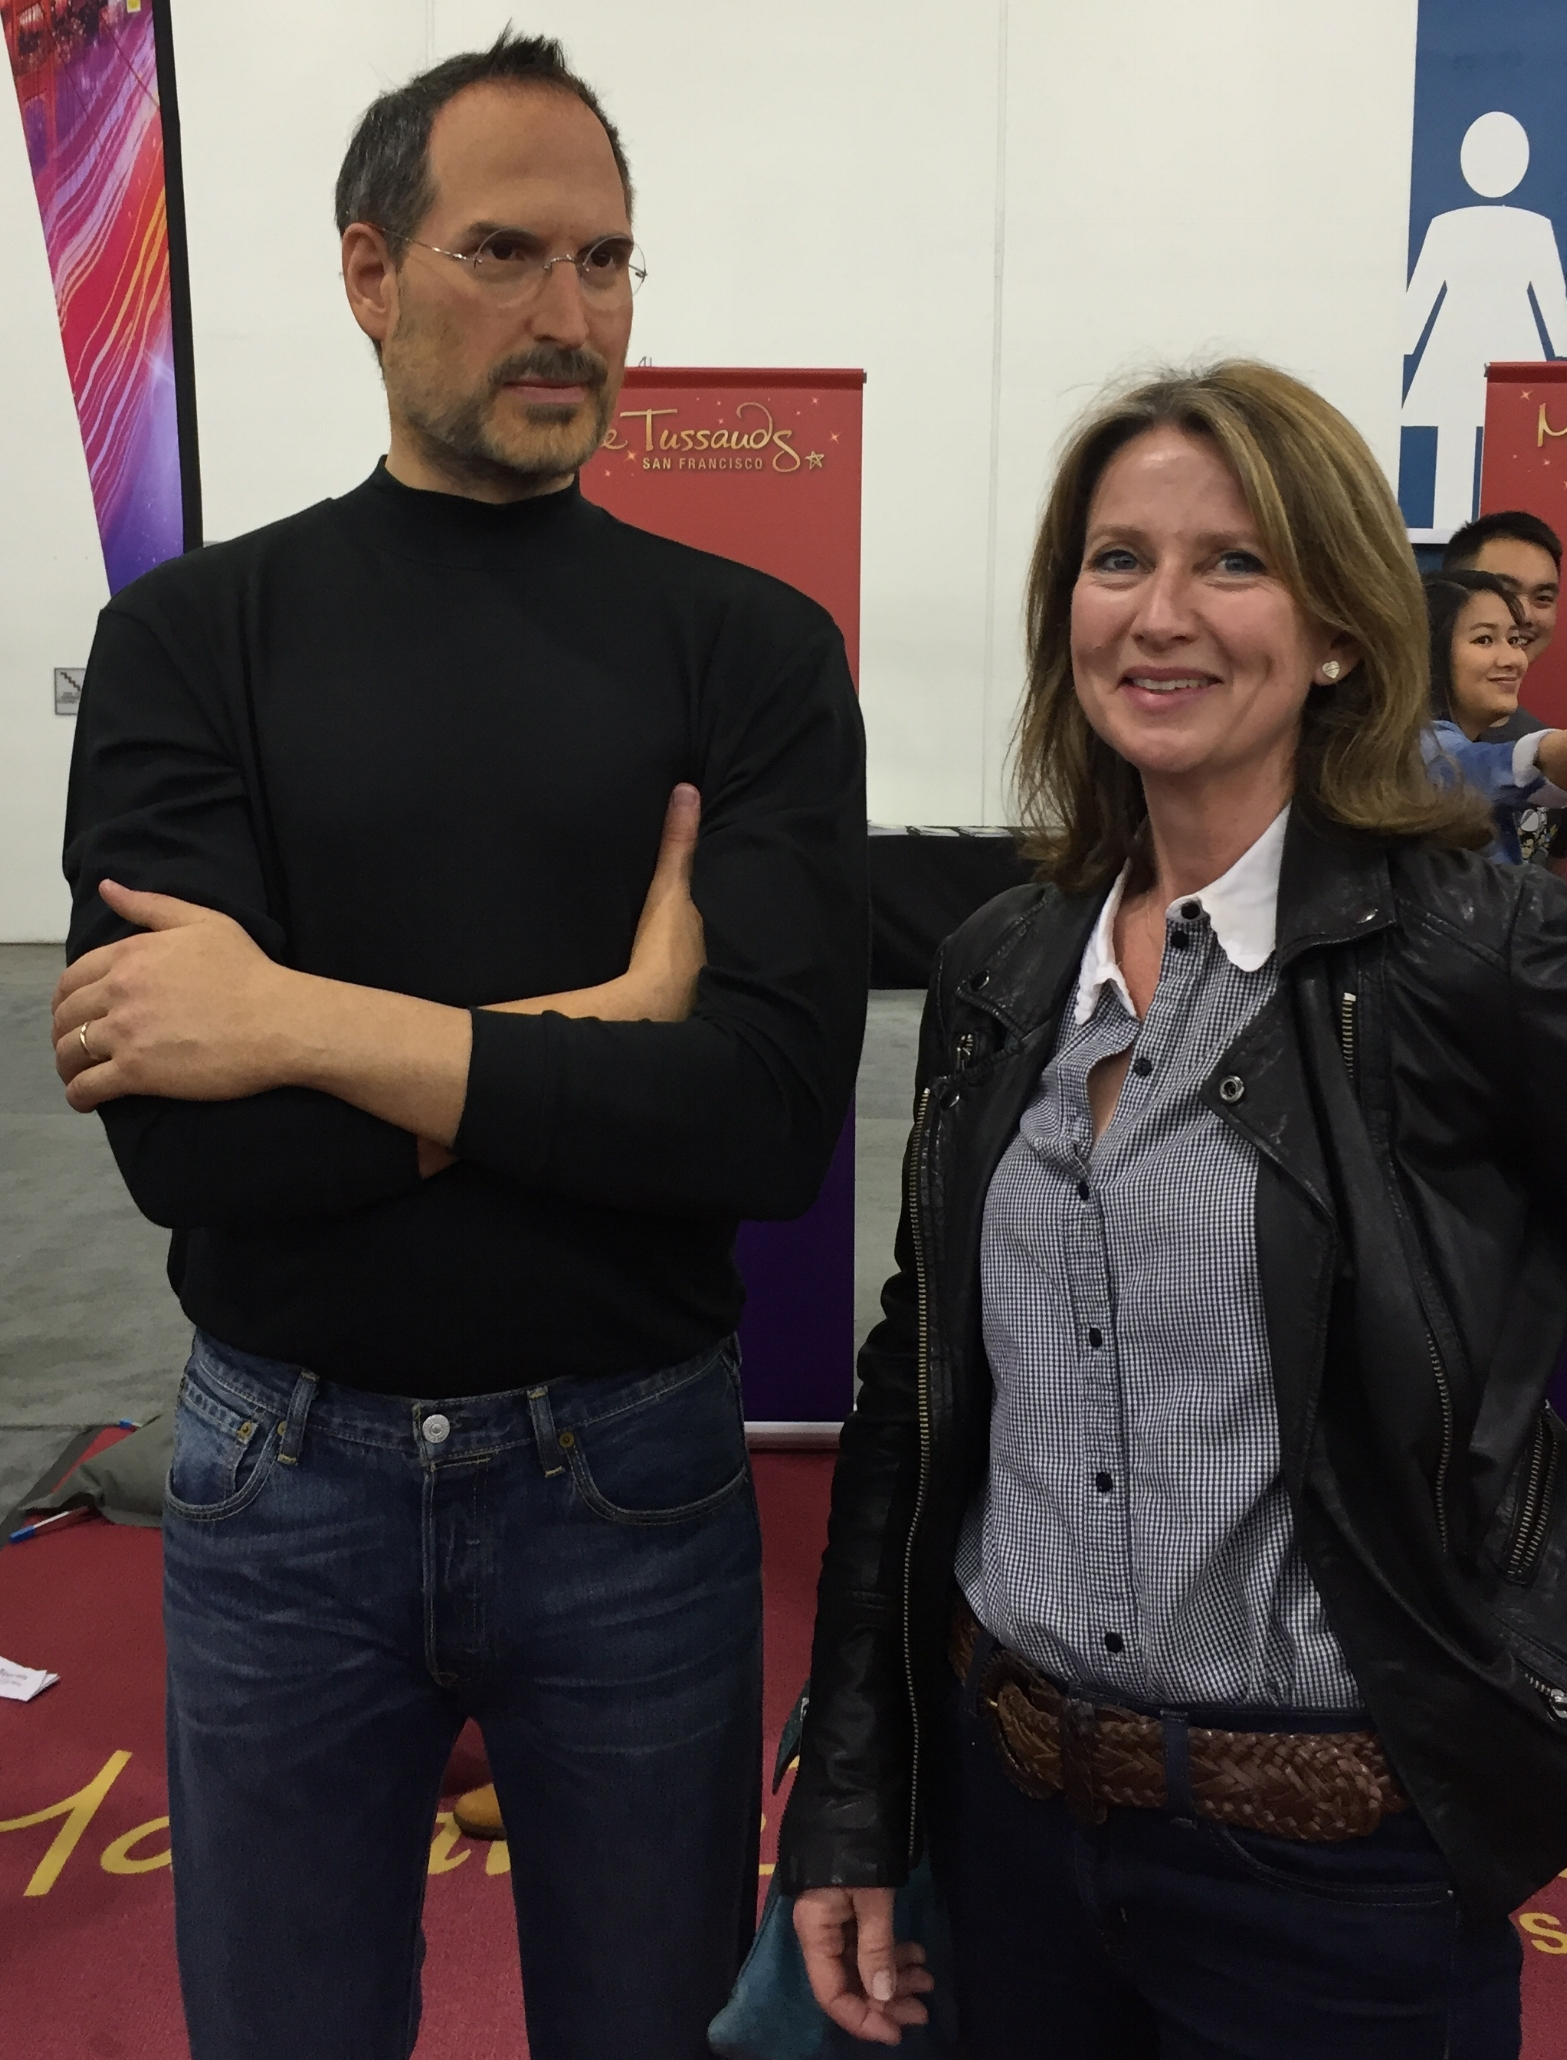 TinkerTech Founder and blog author Claire Comins sharing a joke with a waxwork Steve Jobs. At ComiCon Silicon Valley